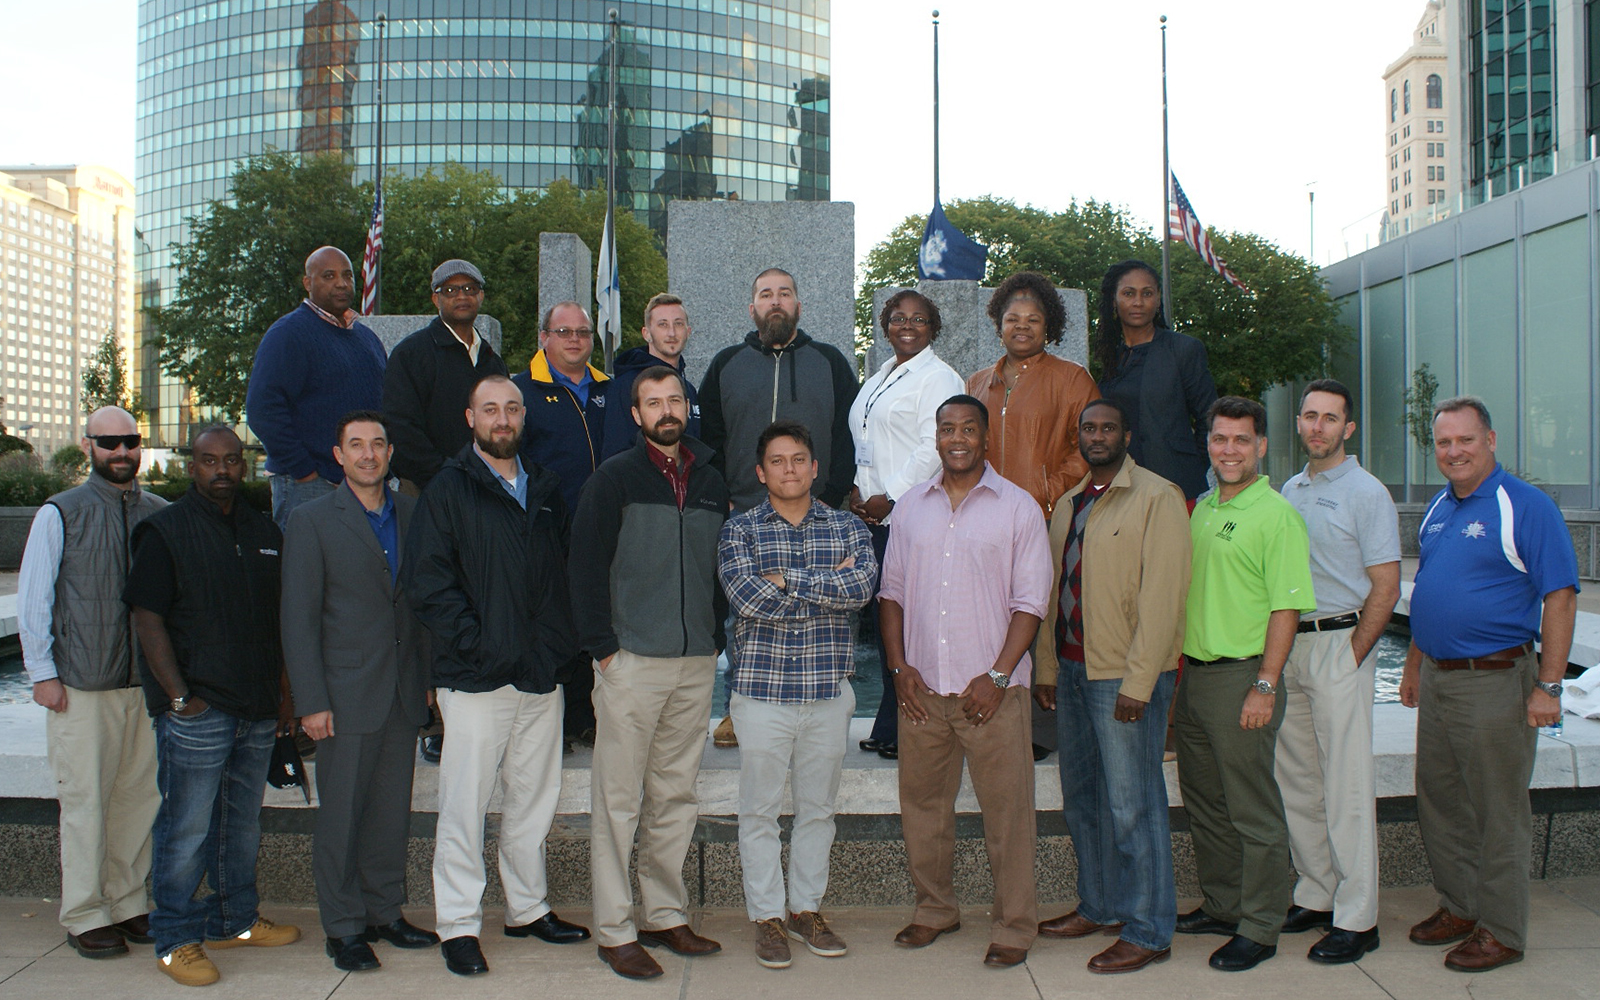 The 2016 Entrepreneurship Bootcamp for Veterans with Disabilities (EBV) Class. UConn's EBV is a 10-day program that gives veterans the knowledge, skills and helping hand they need to create their own businesses. (Lisa Ducharme)